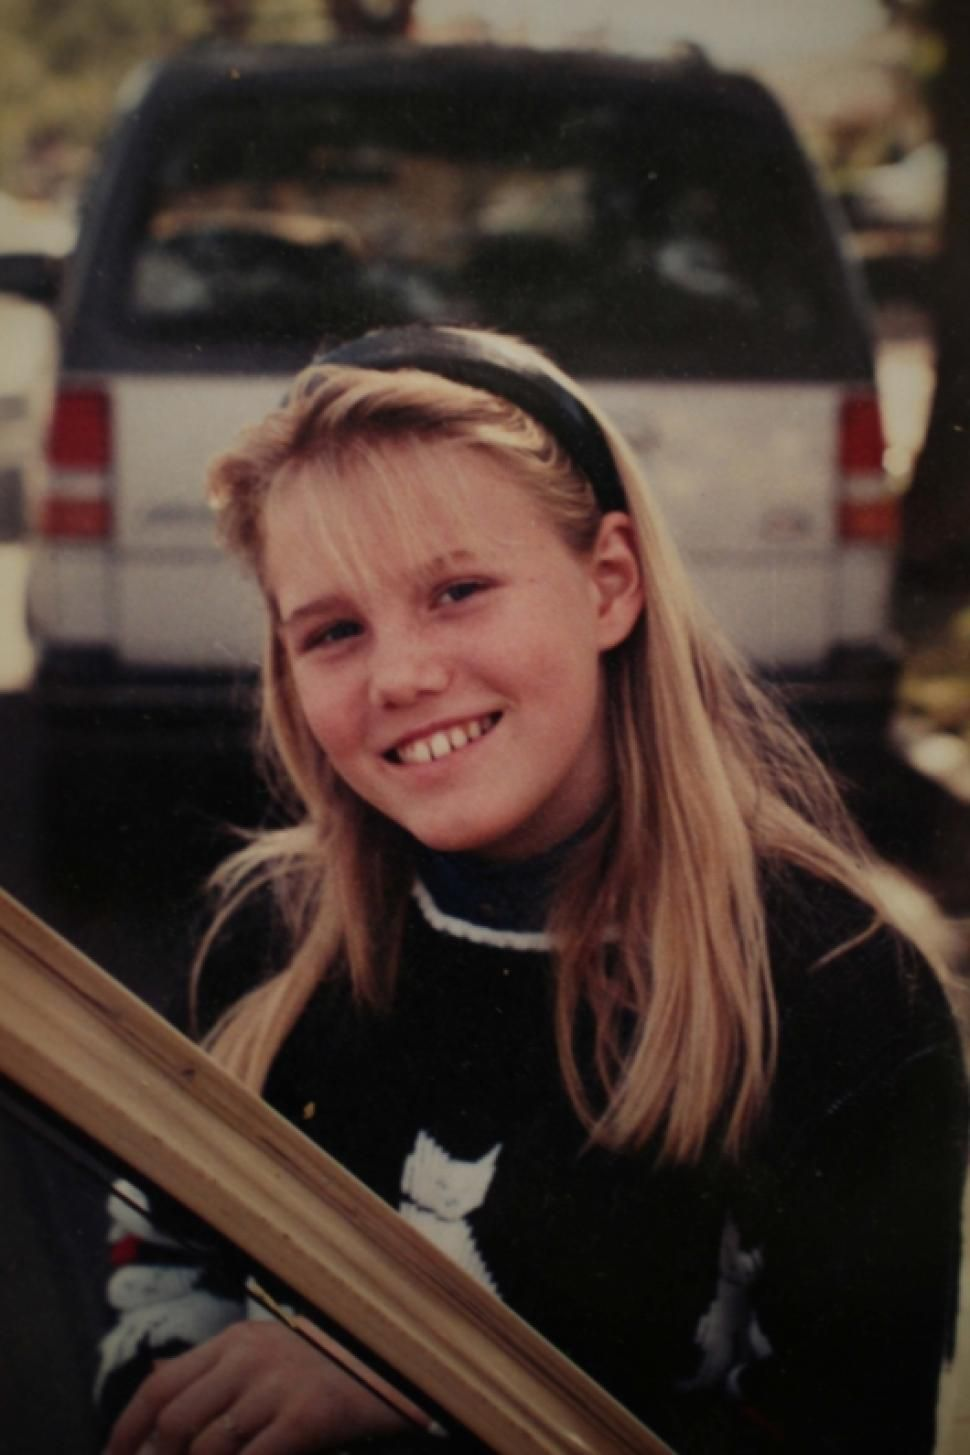 Jaycee Dugard is shown in a family photo, after her disappearance in 1991 from a